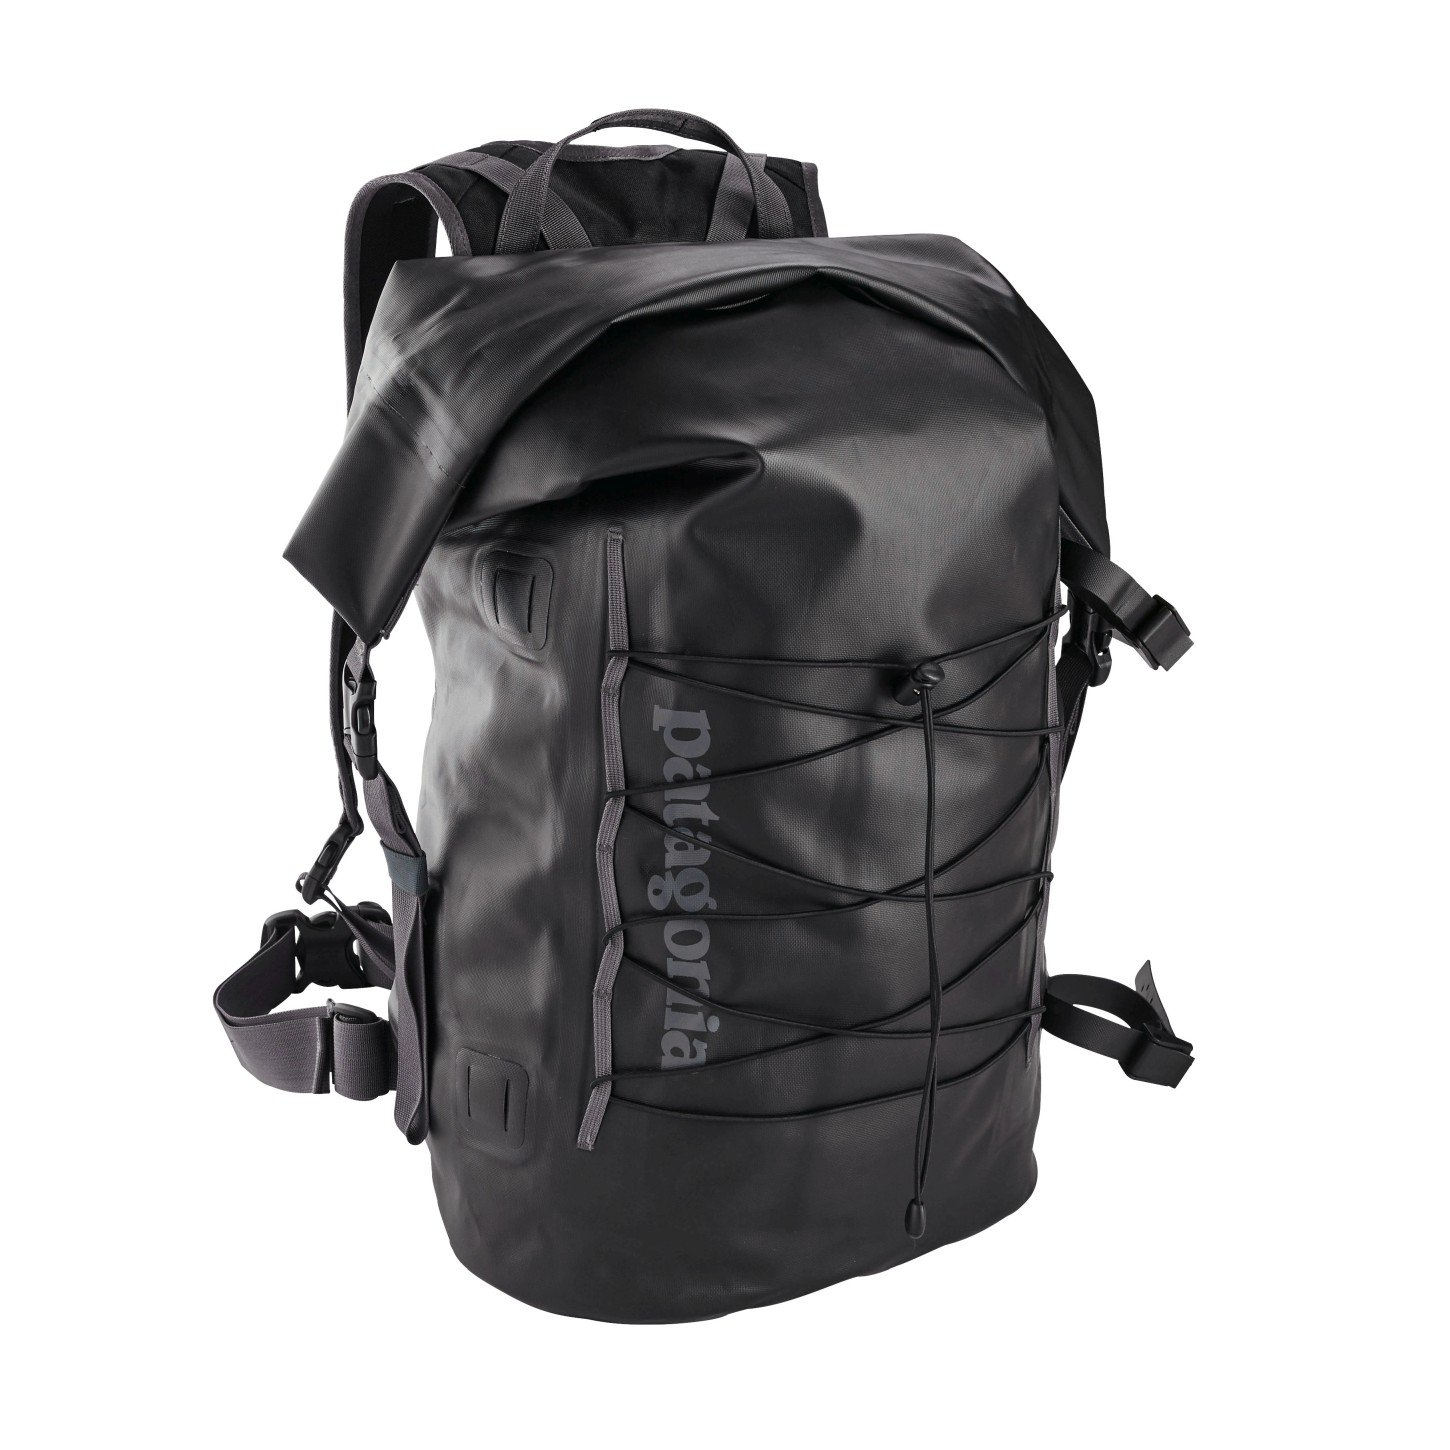 Patagonia パタゴニア Stormfront Roll Top Pack ザック バッグ 防水 (Black)